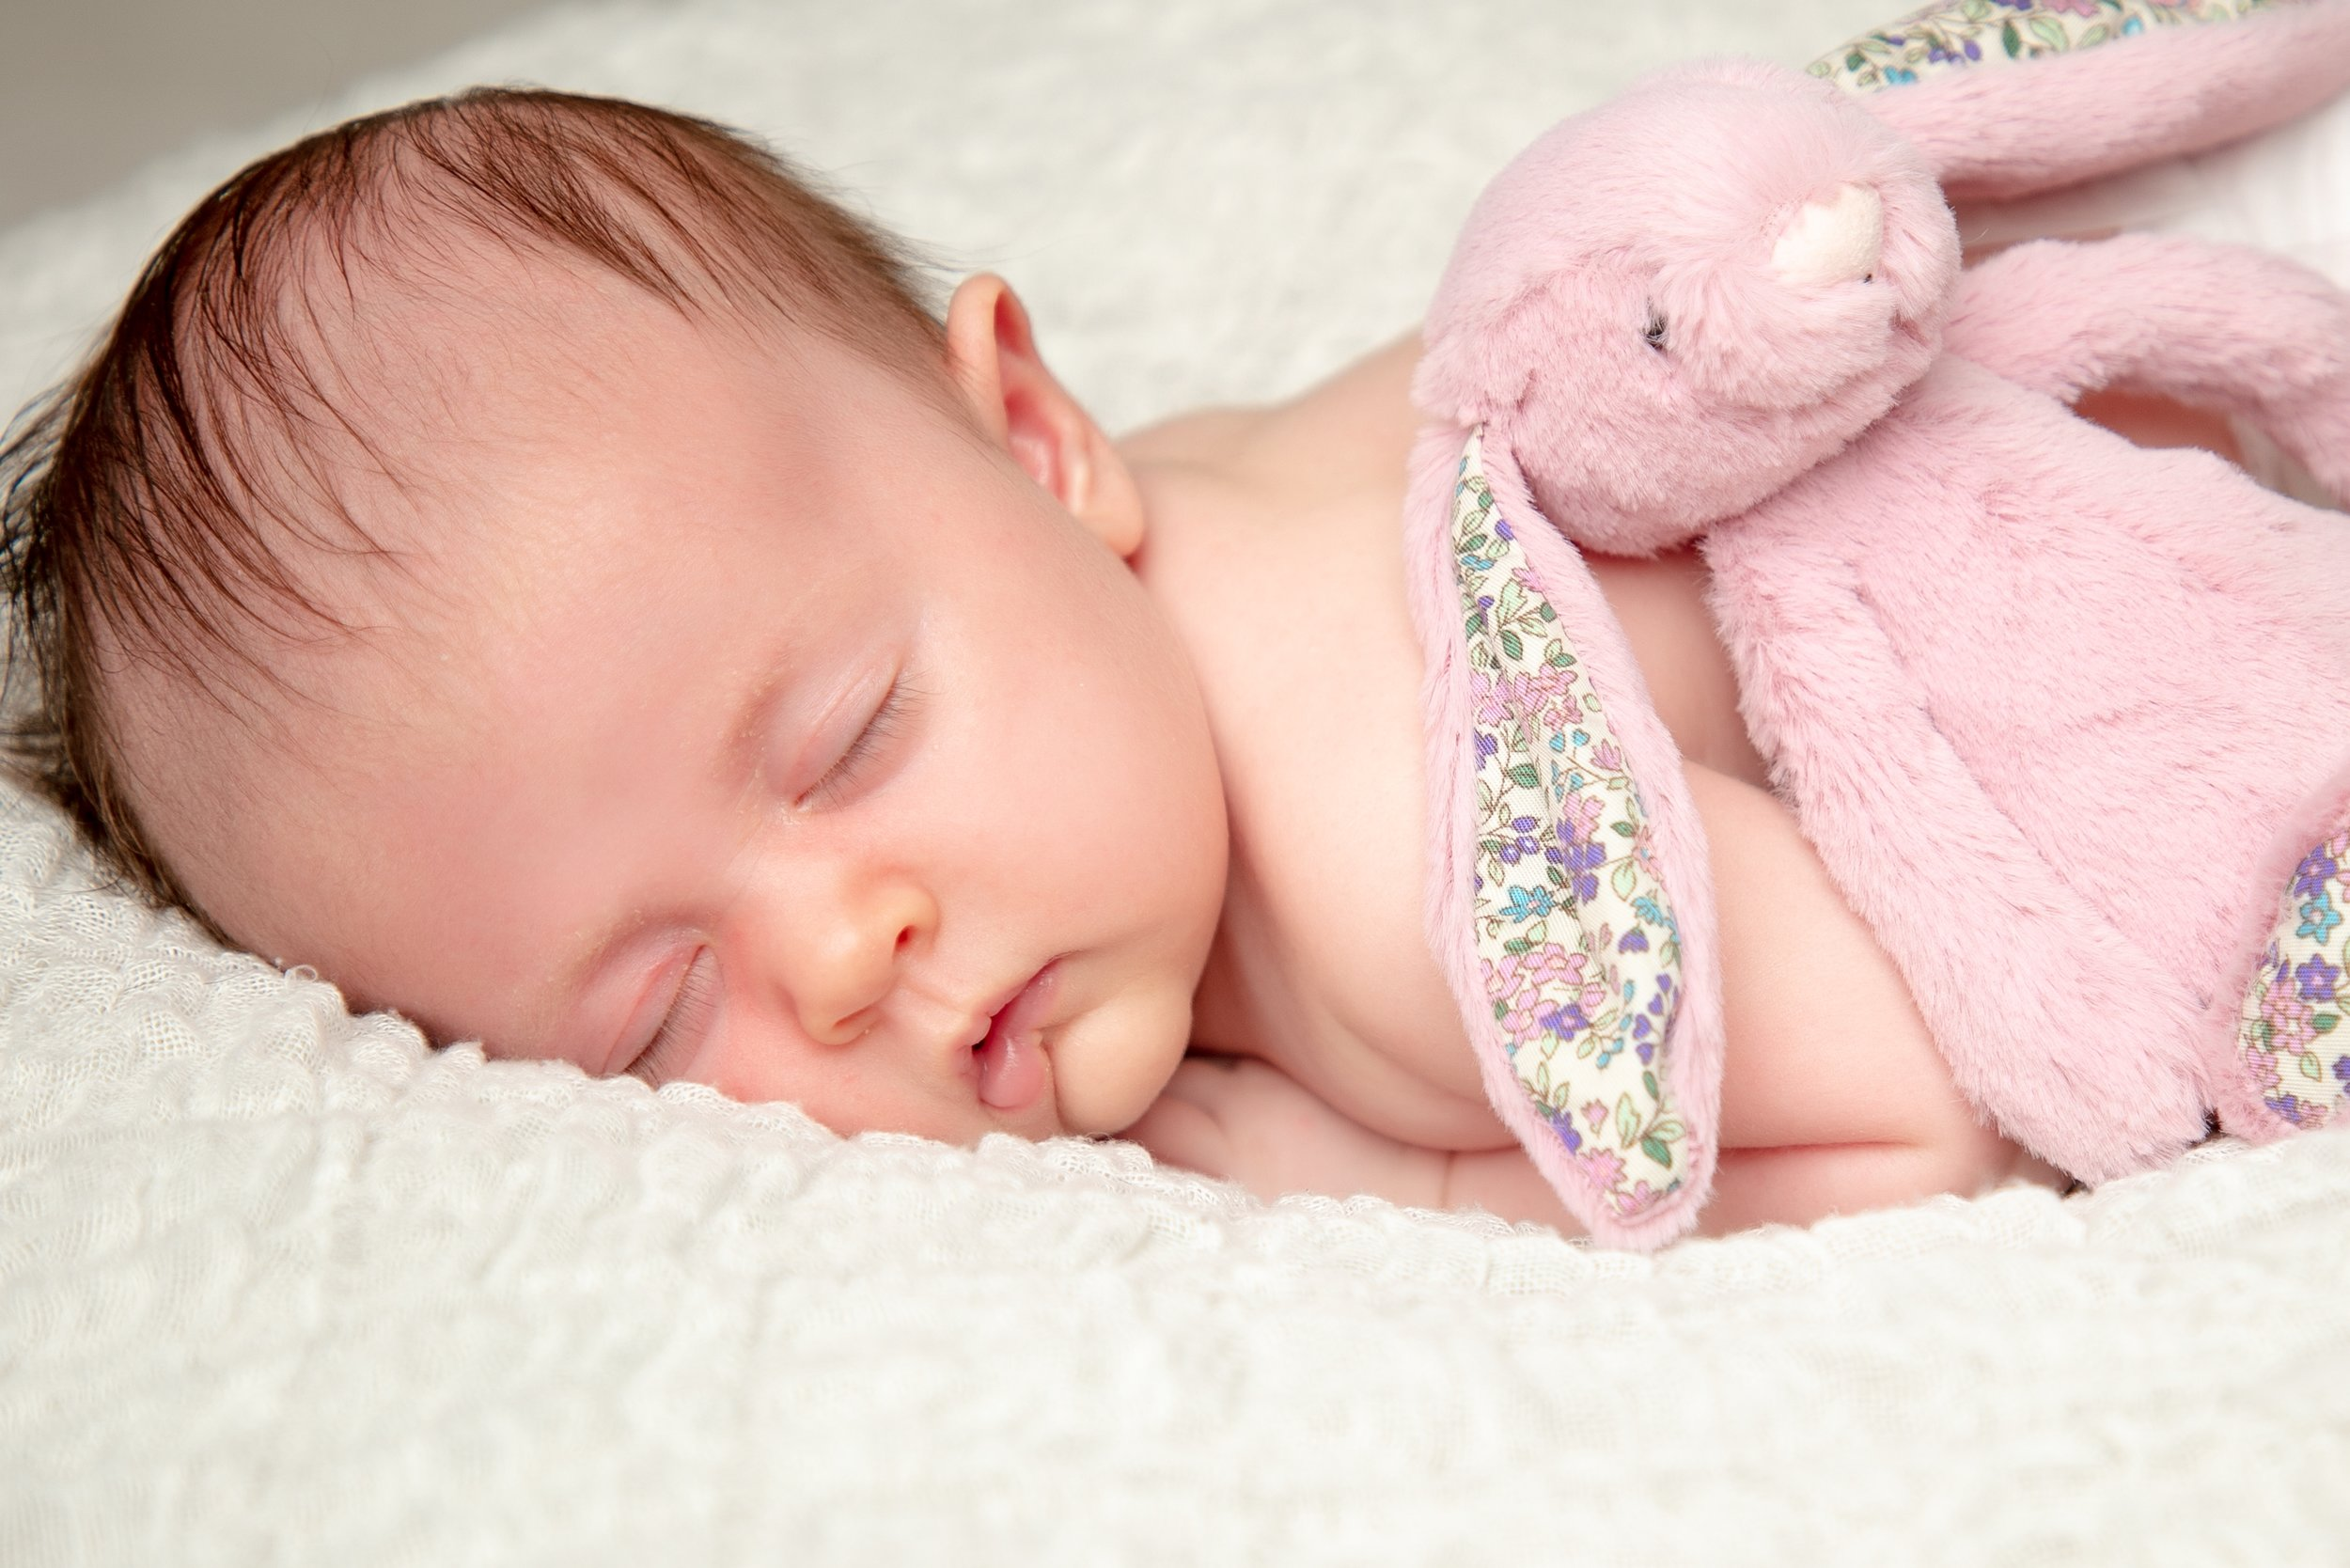 zig-zag-photography-leicester-photographer-photography-baby-newborn-photo-shoot